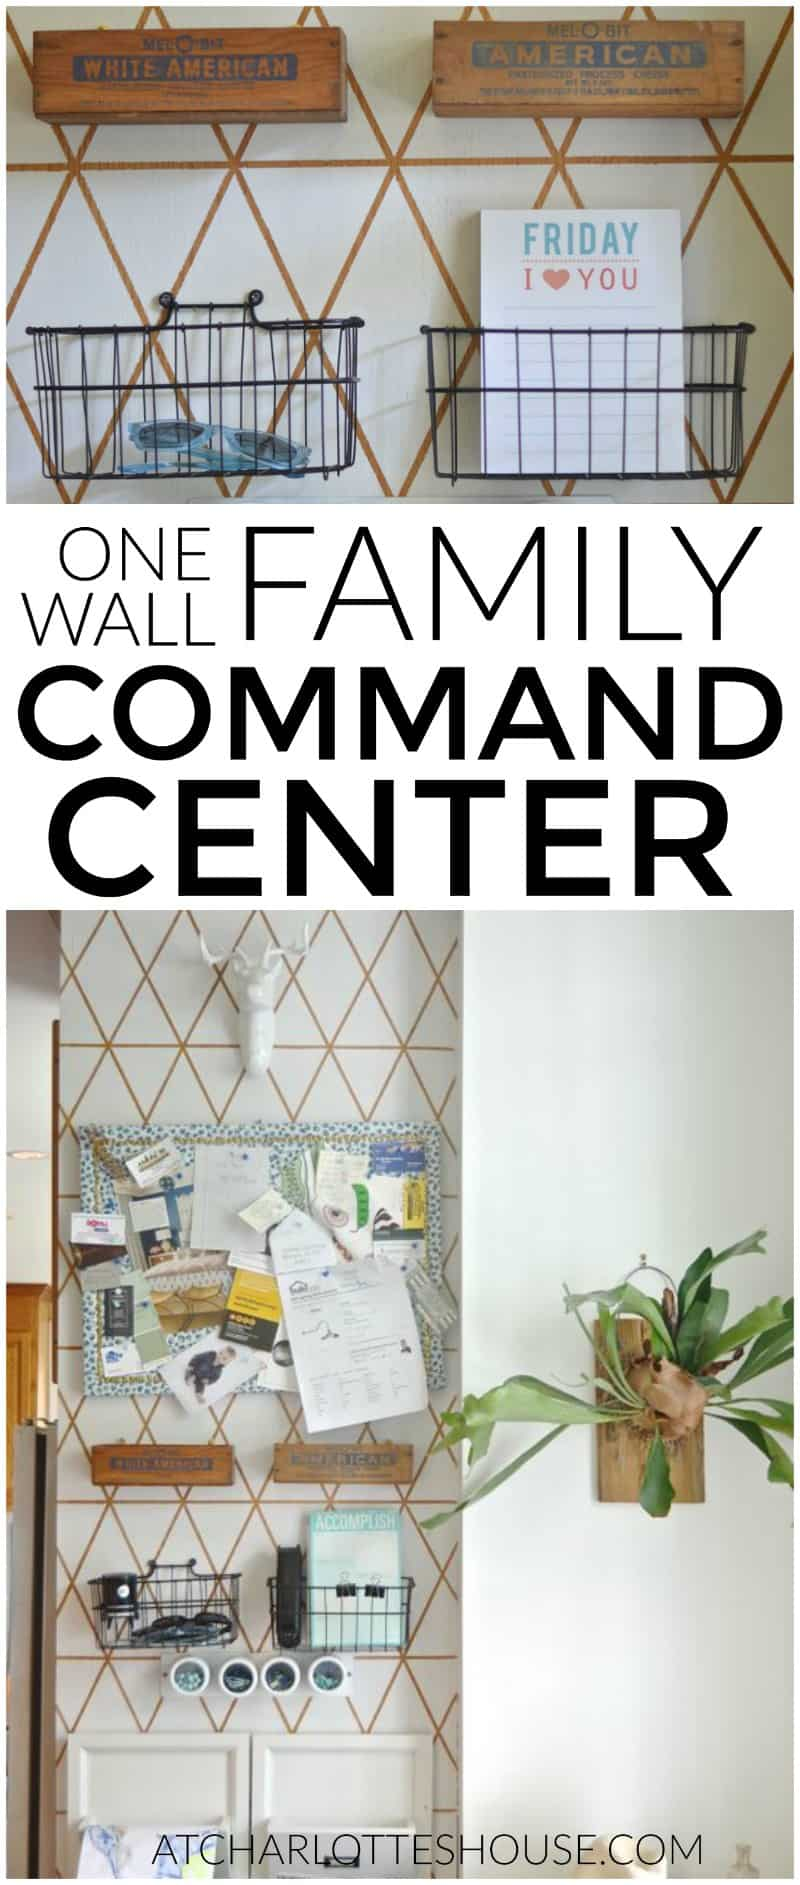 What a great way to organize an entire family using only one small wall in our kitchen!